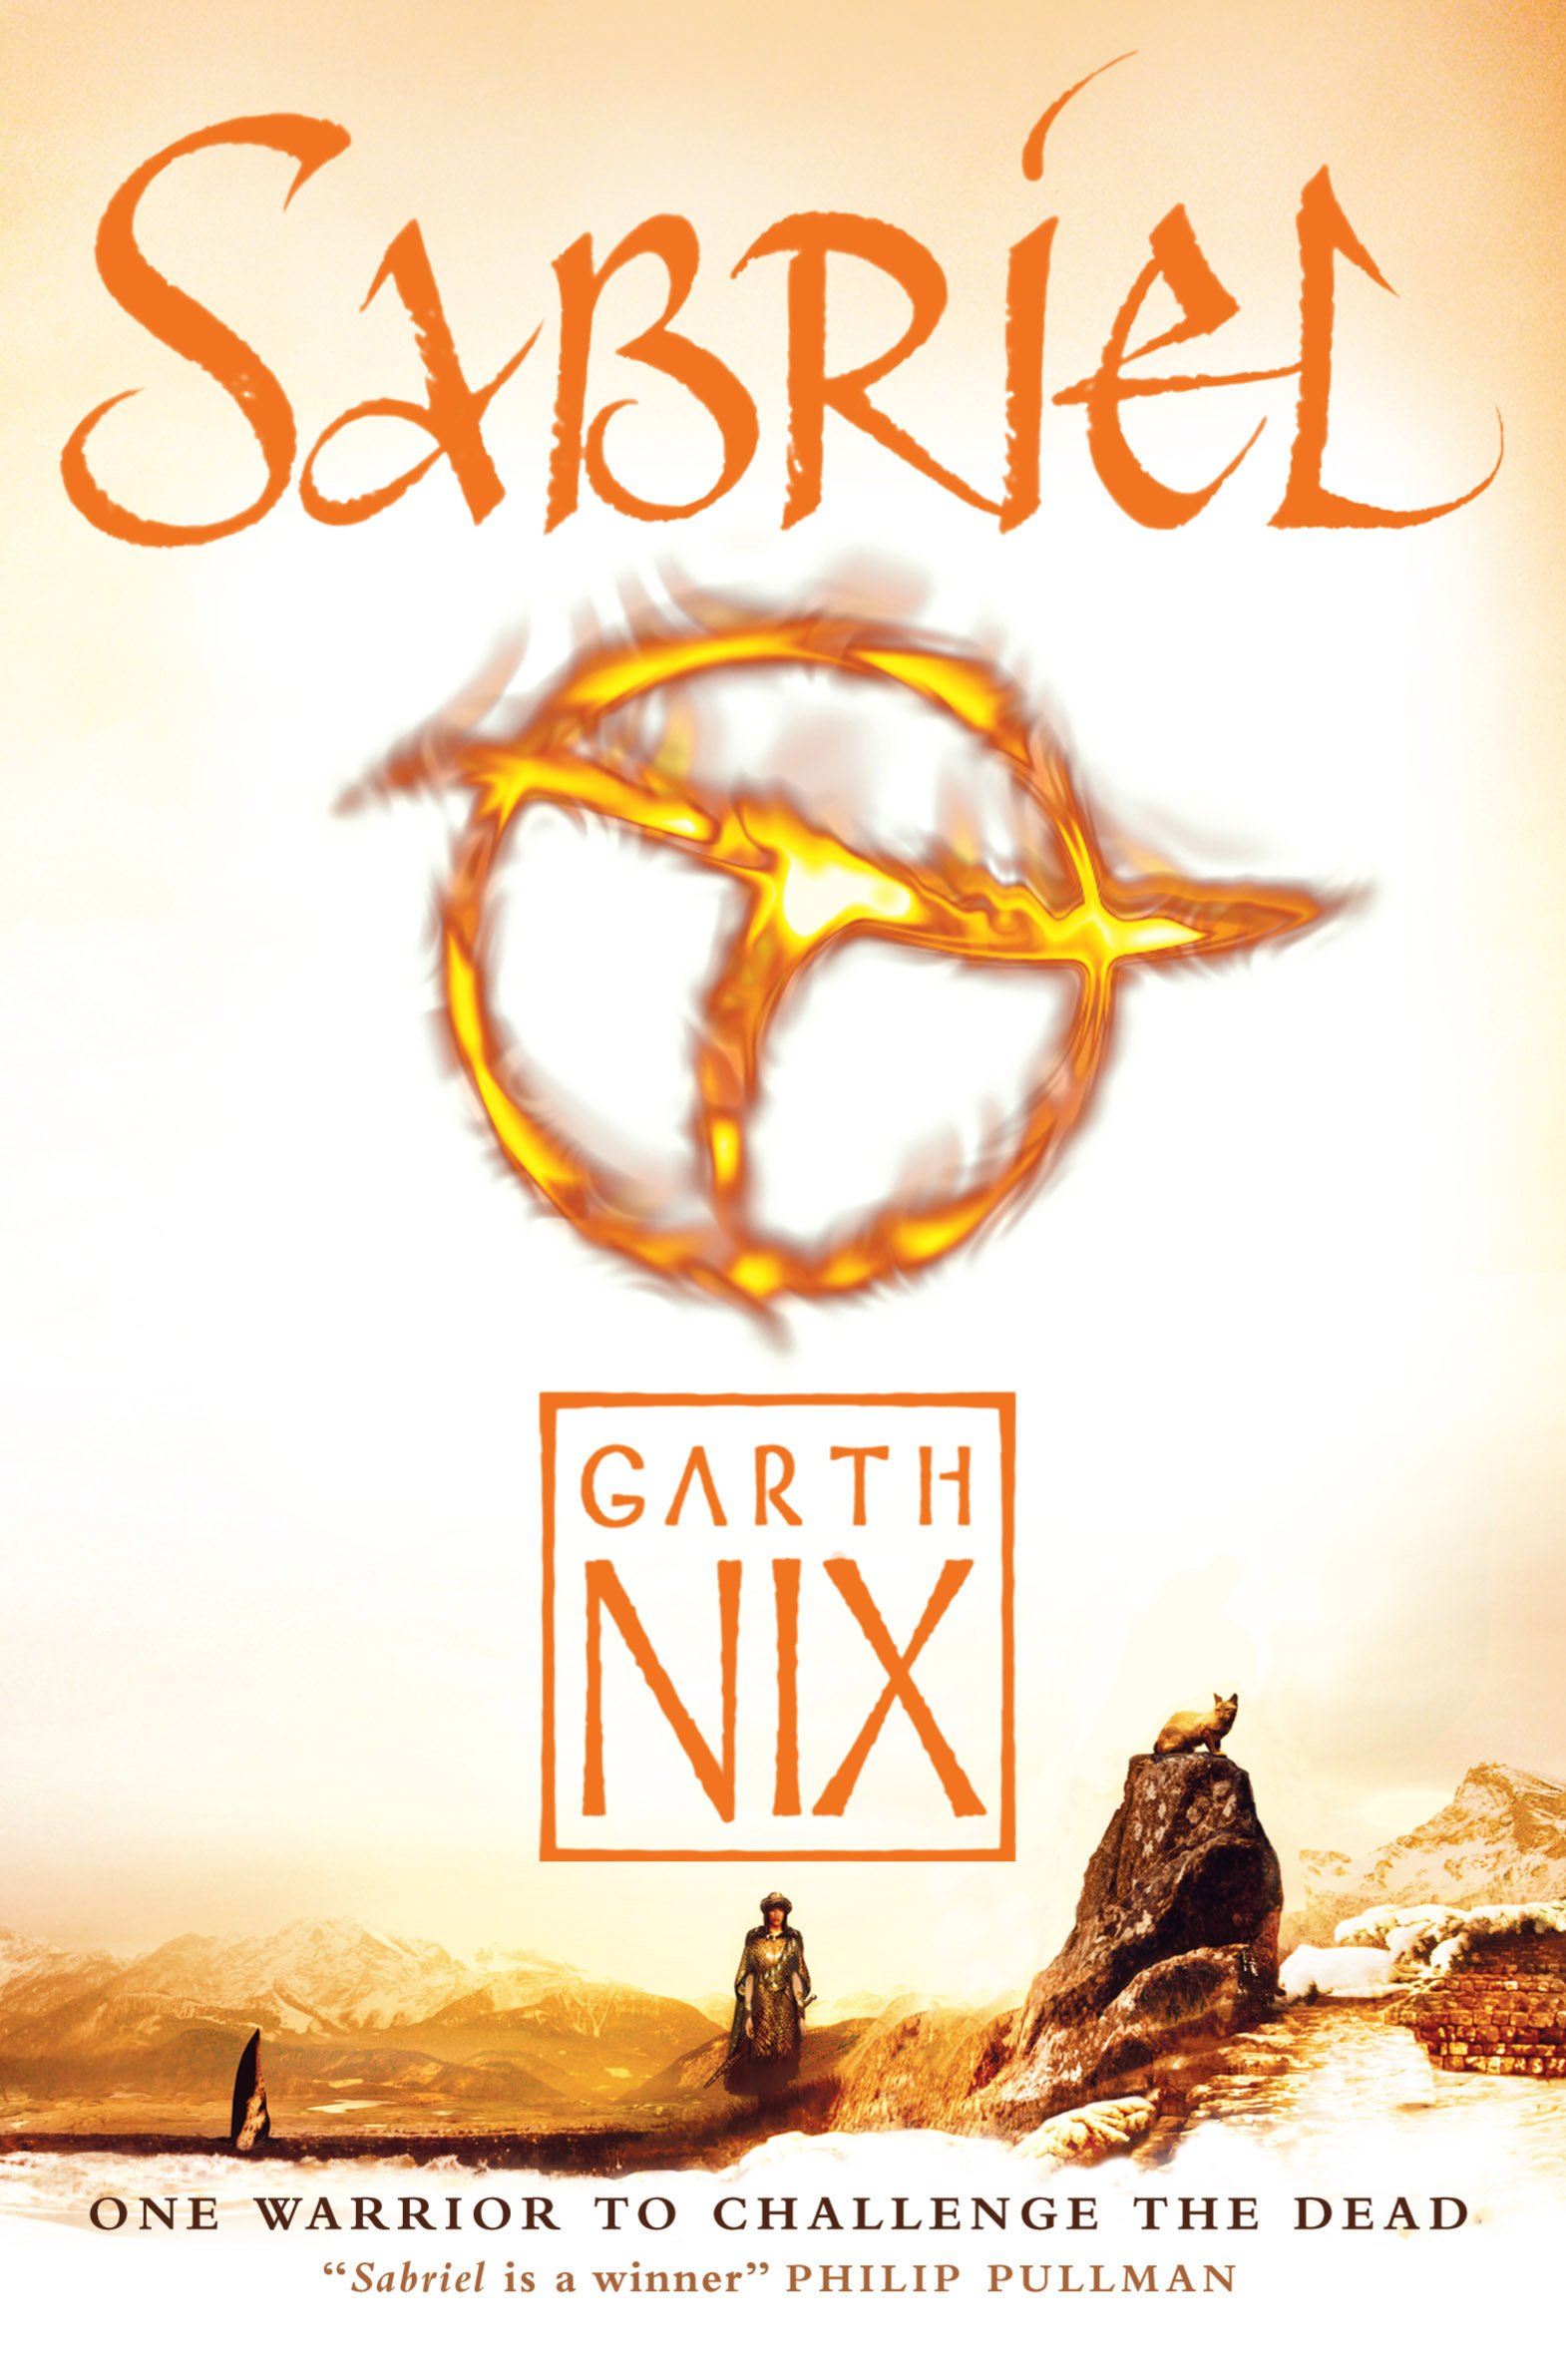 Image result for sabriel garth nix